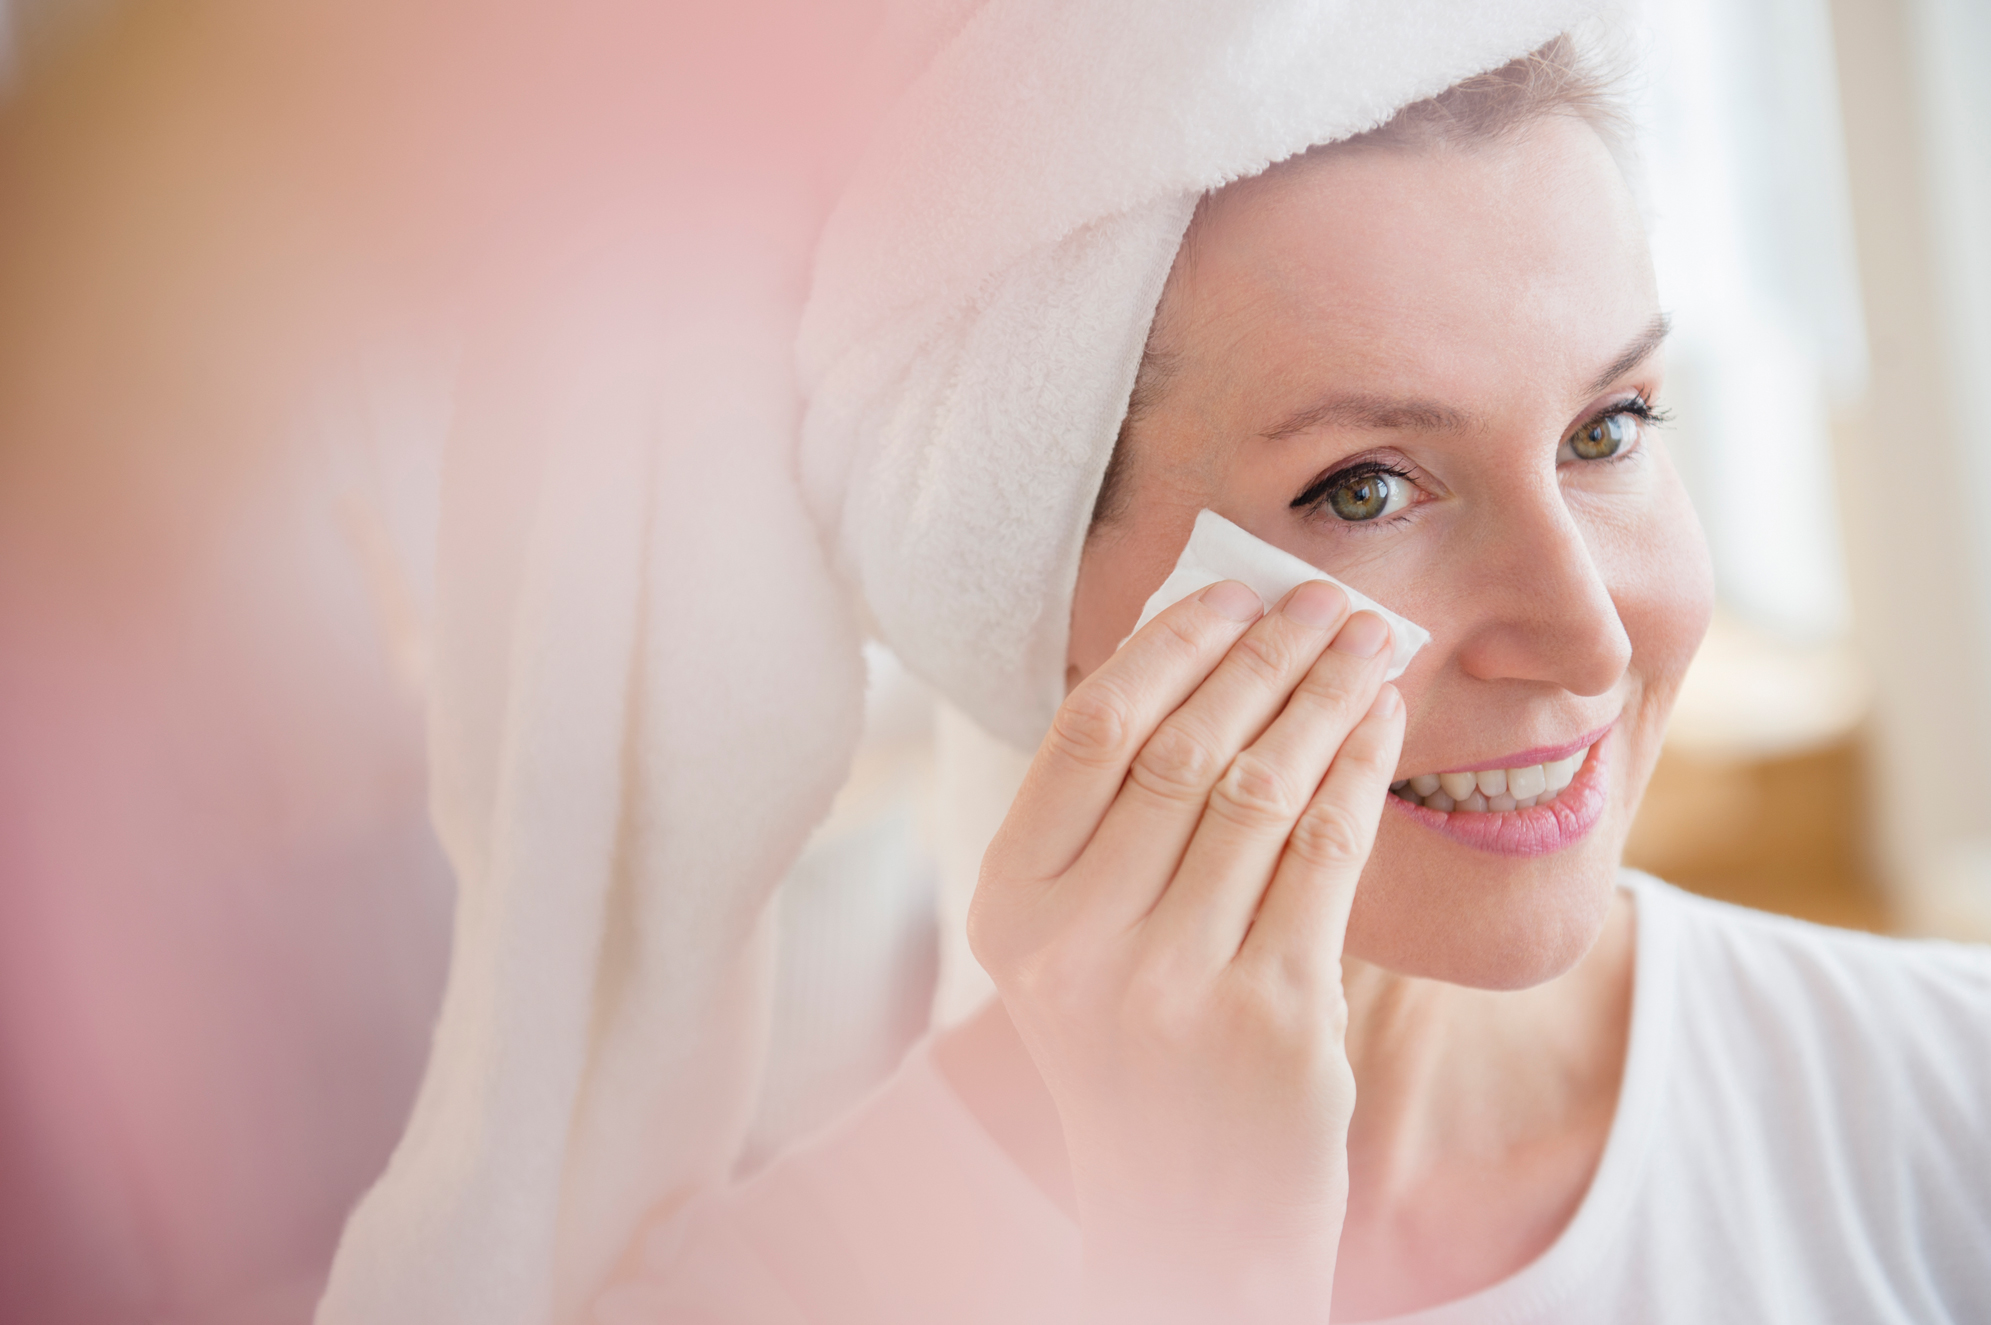 person with hair wrapped in towel wiping face with skin care towelette